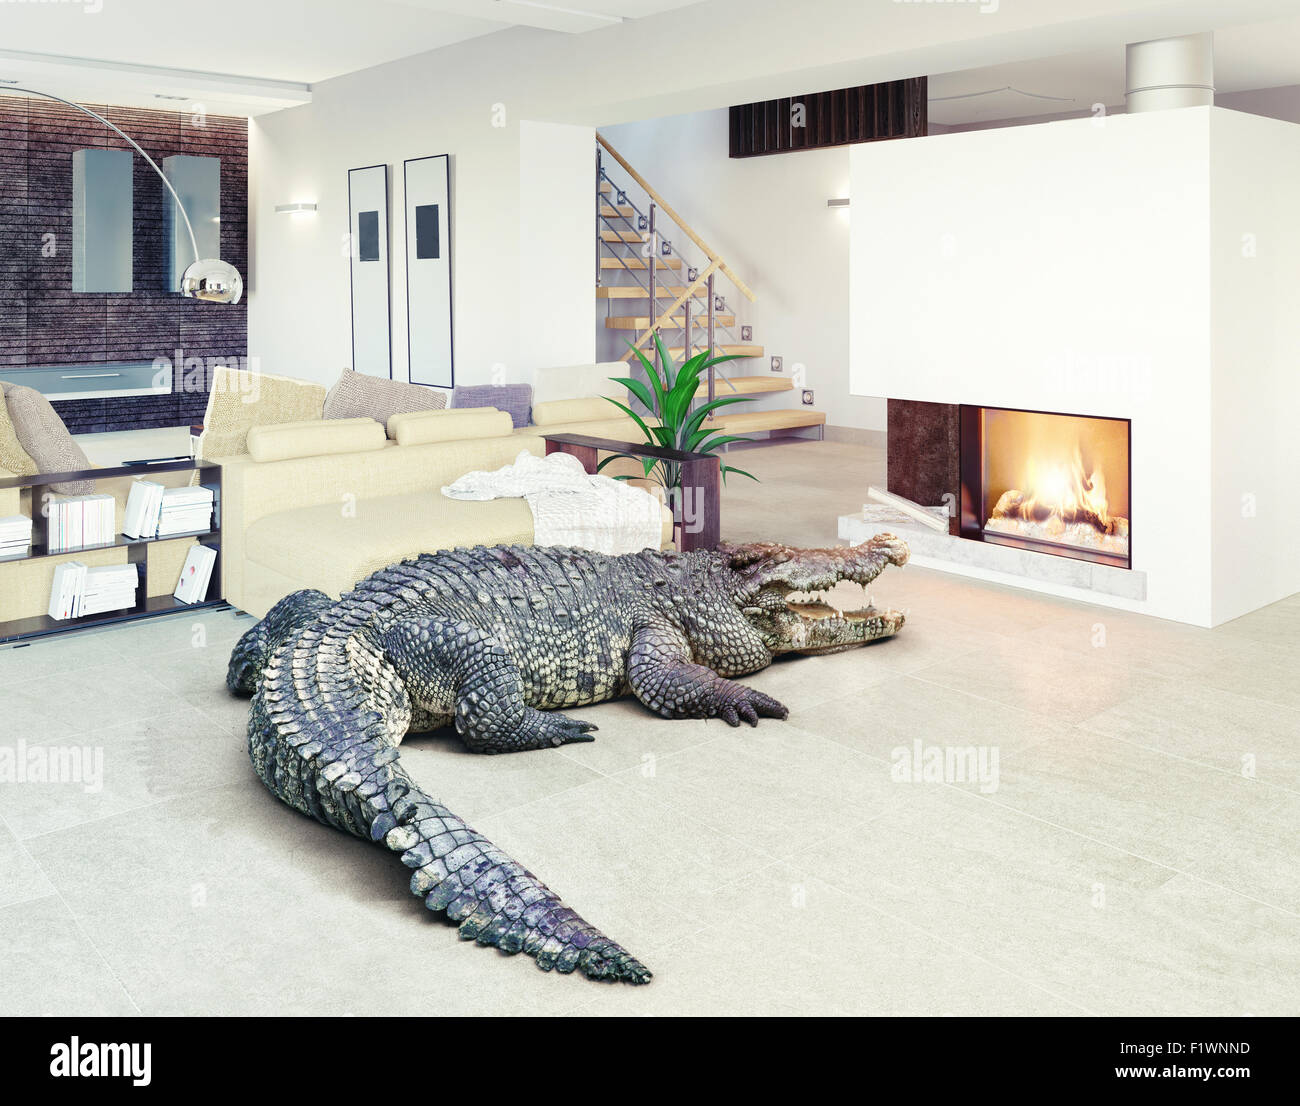 Big crocodile relax in the luxury interior (photo and cg elements combination) - Stock Image